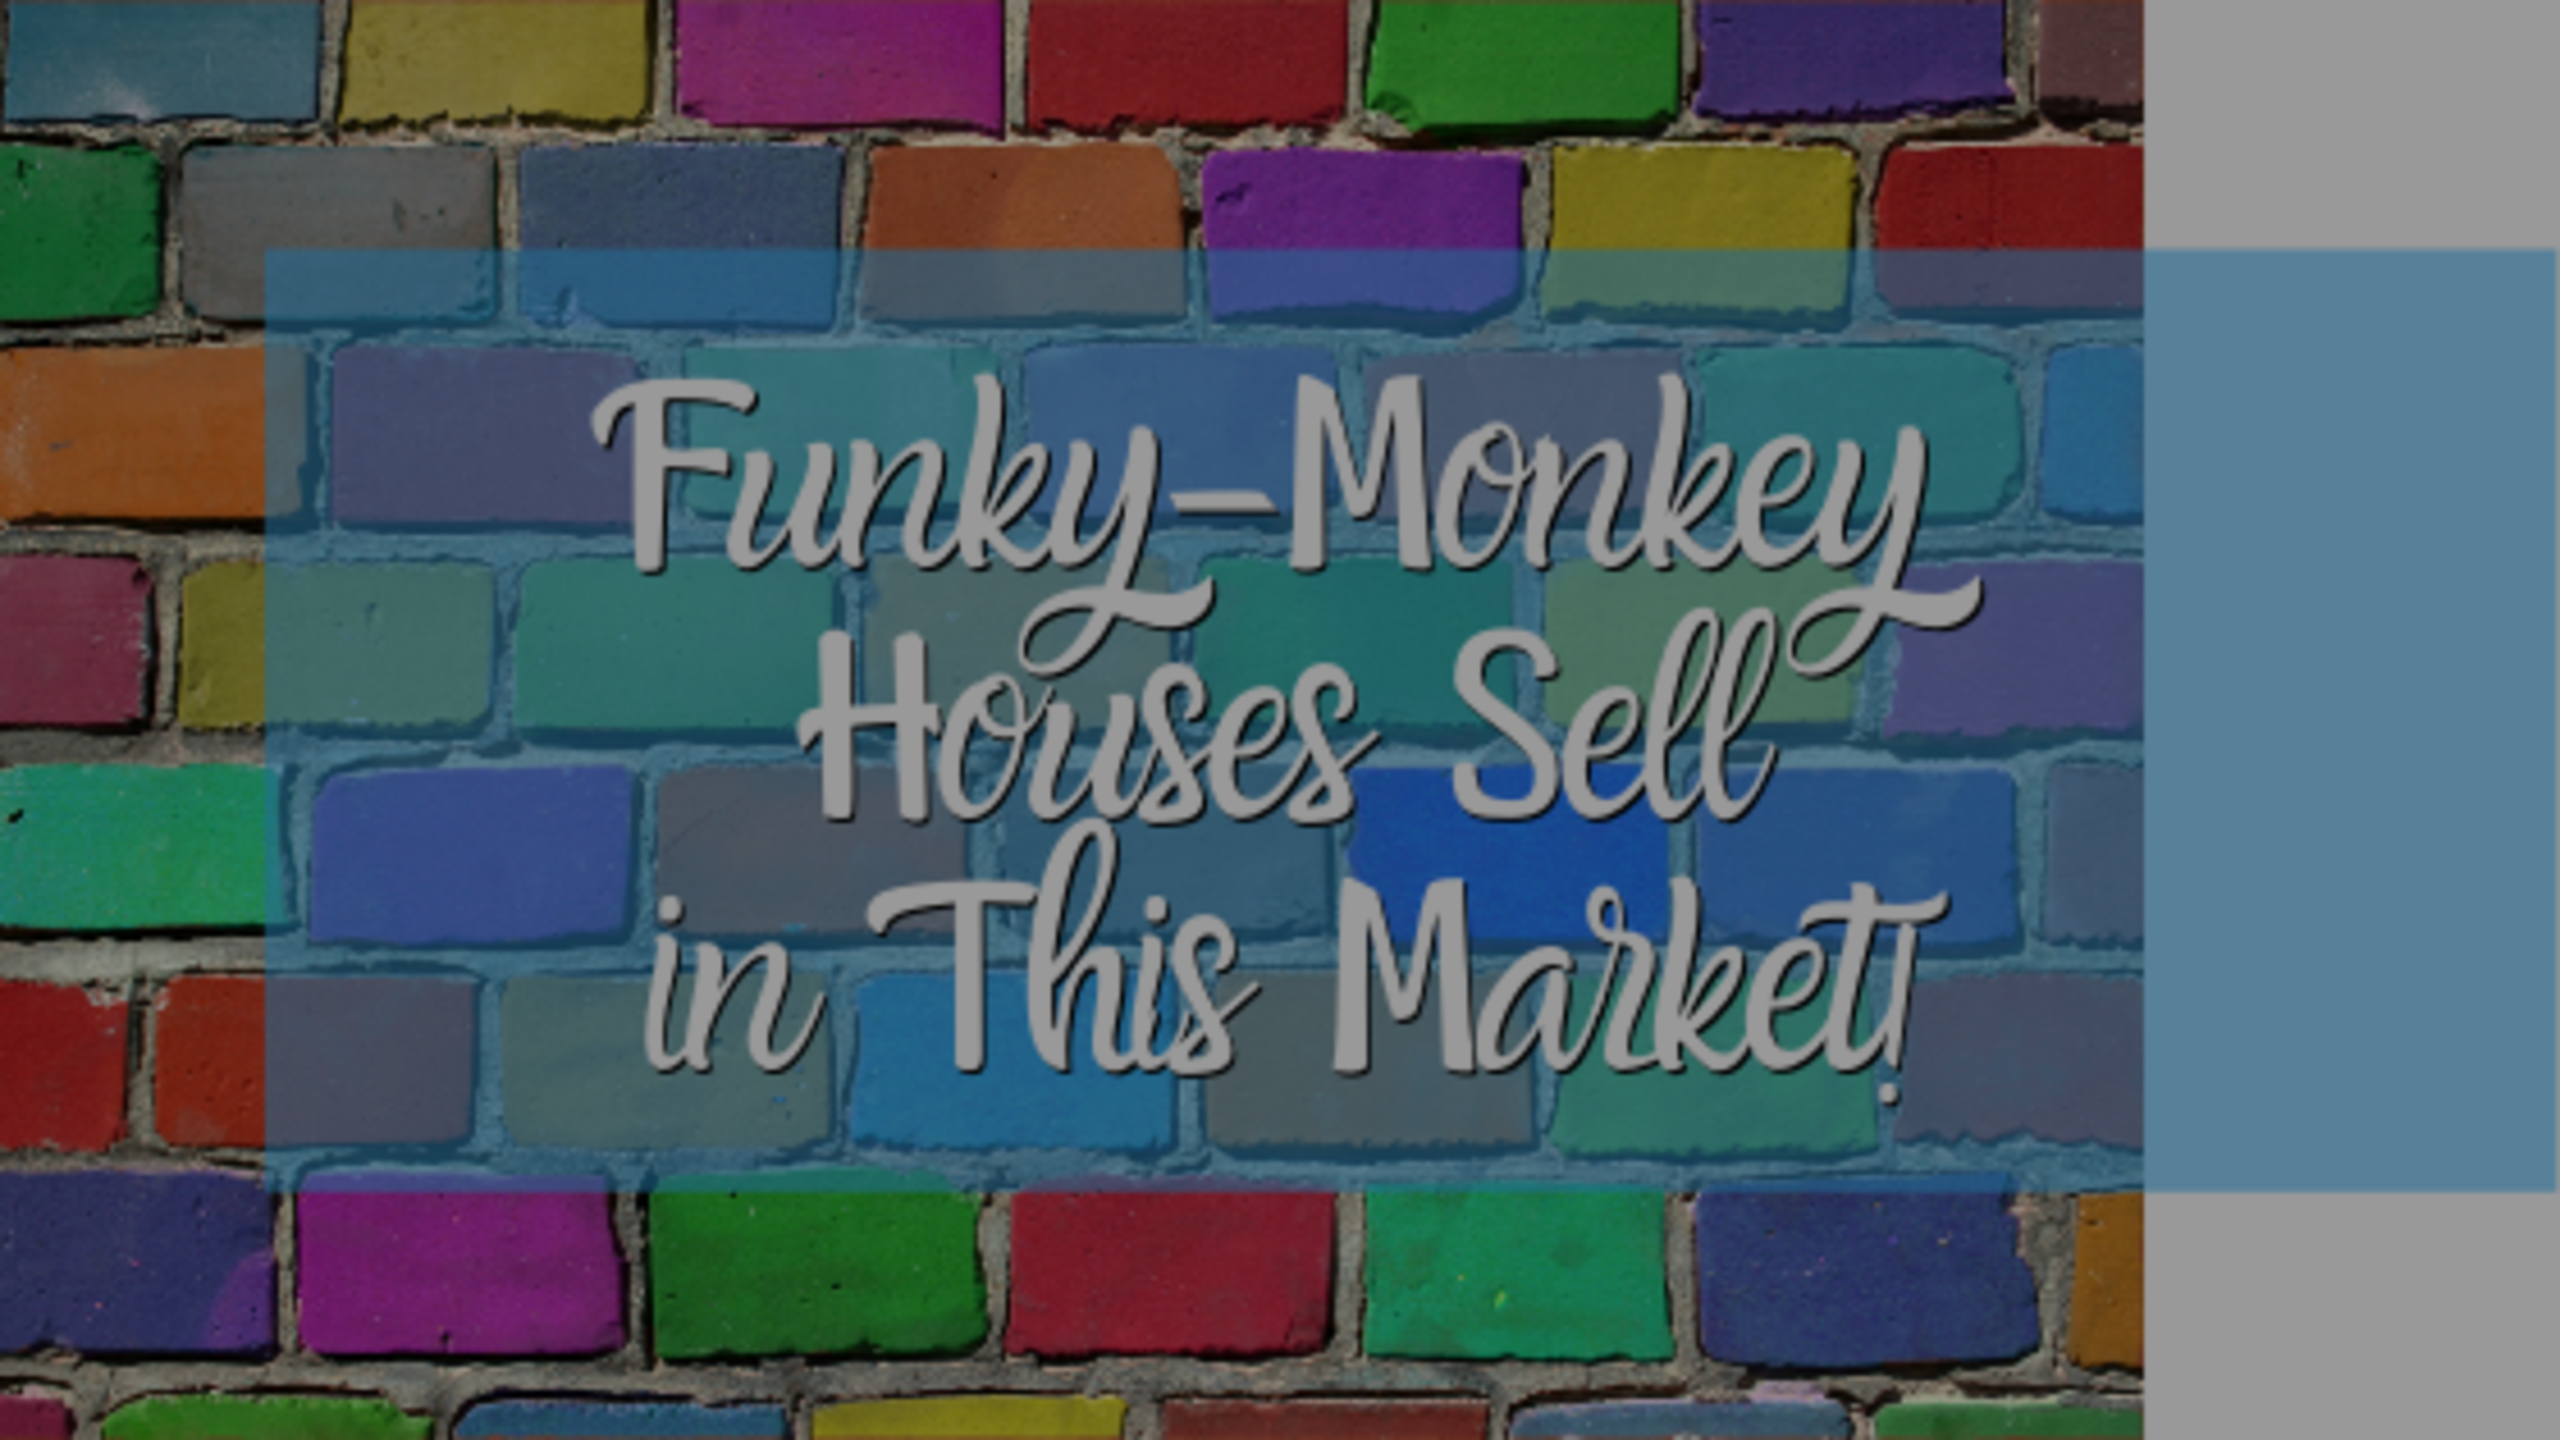 Funky-Monkey Houses Sell in This Market